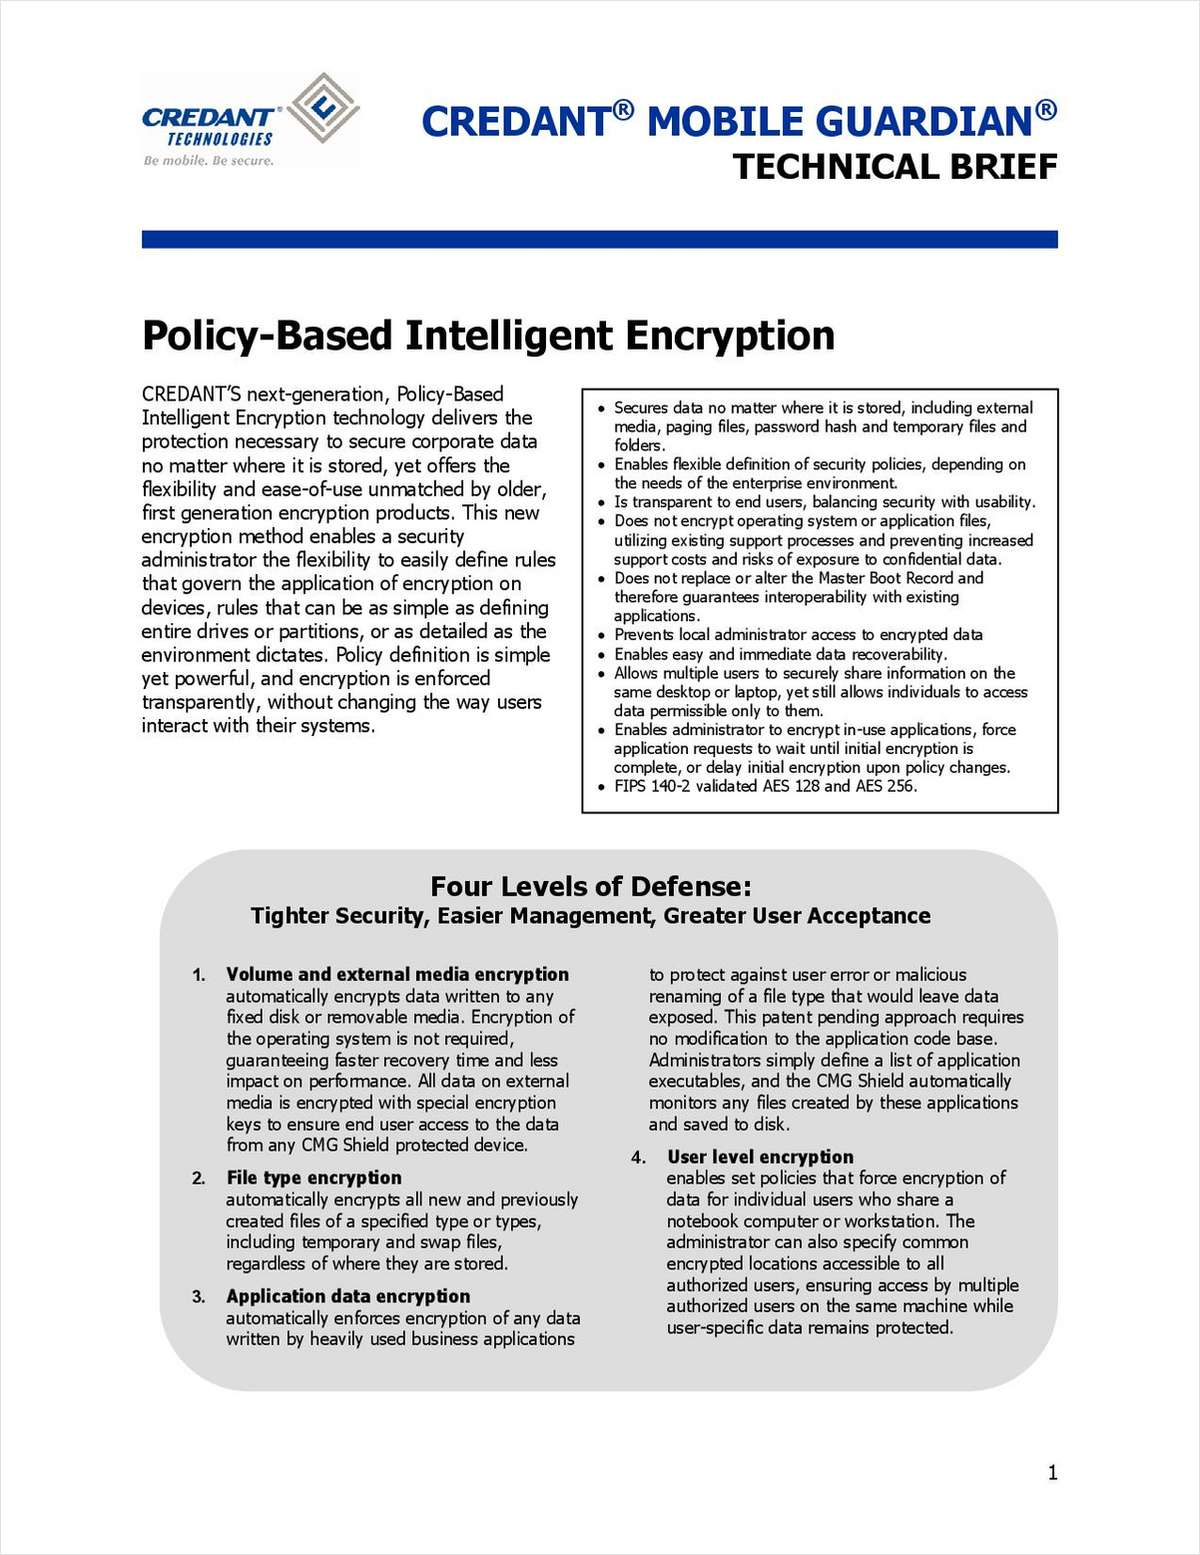 Secure Corporate Data with Policy-Based Intelligent Encryption